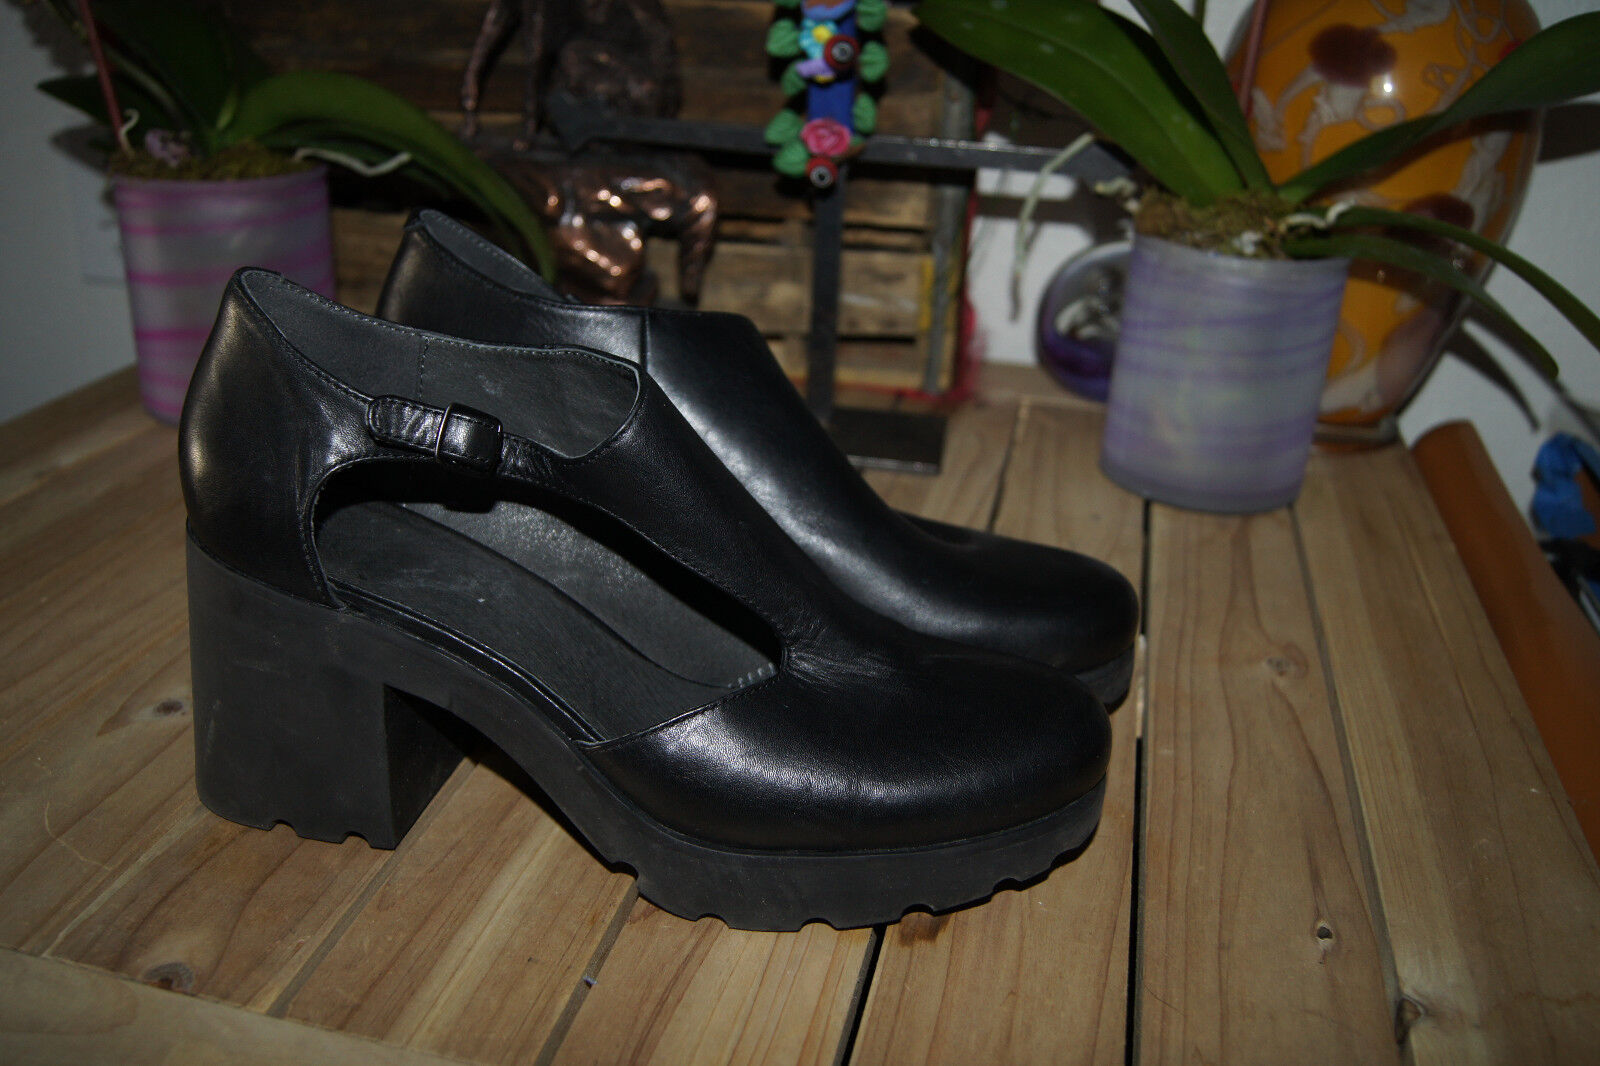 Camper SHOES 11 Mary HIGH Jane SHOES 11 CAMPER SHOES 11 HIGH Mary HEEL SHOES 11 9fbd7e